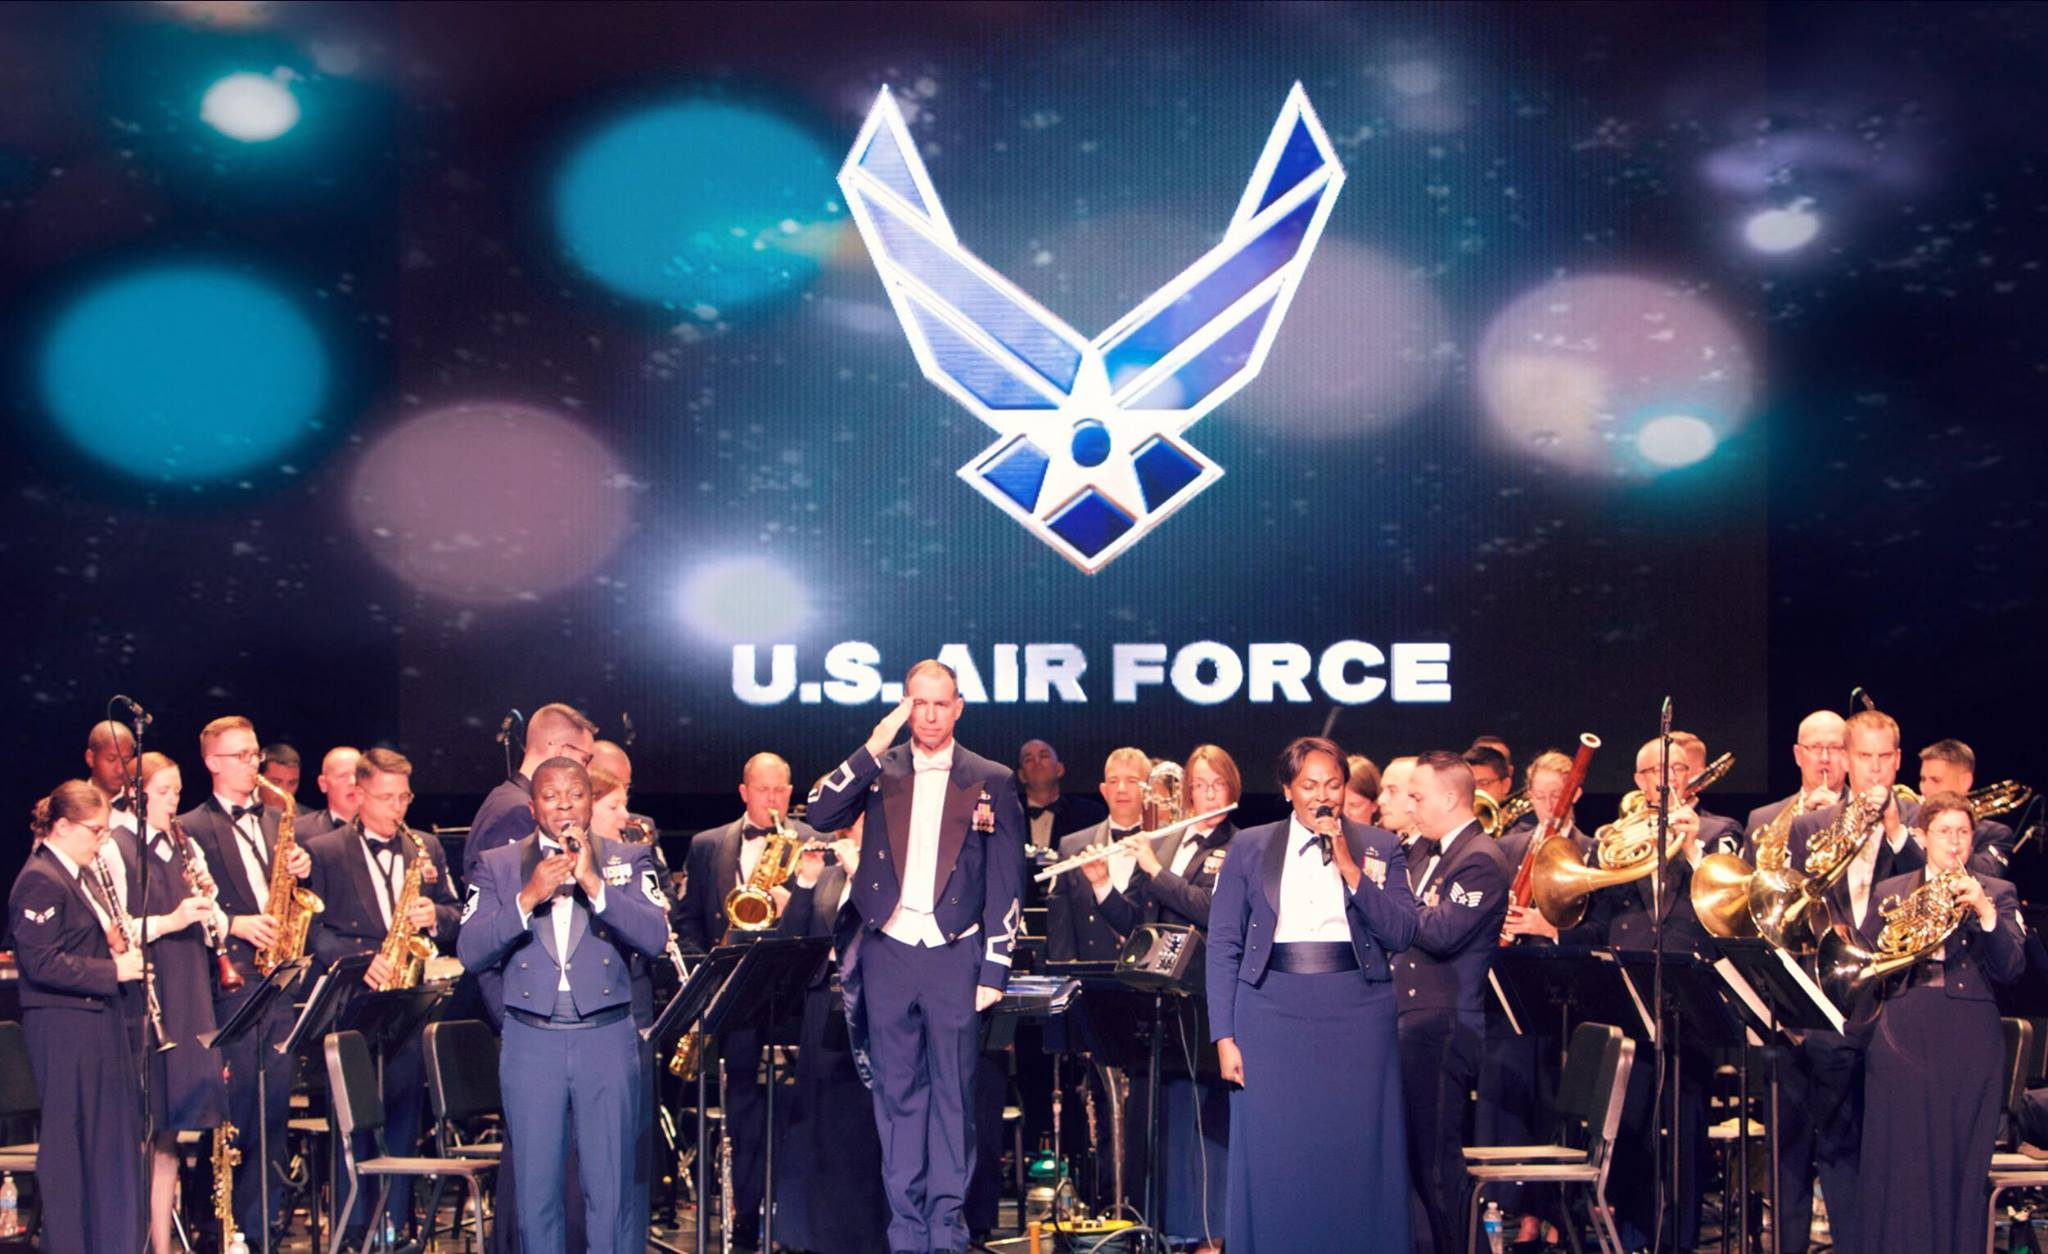 TALENT NEEDED: United States Air Force Bands are Looking for Vocalists!